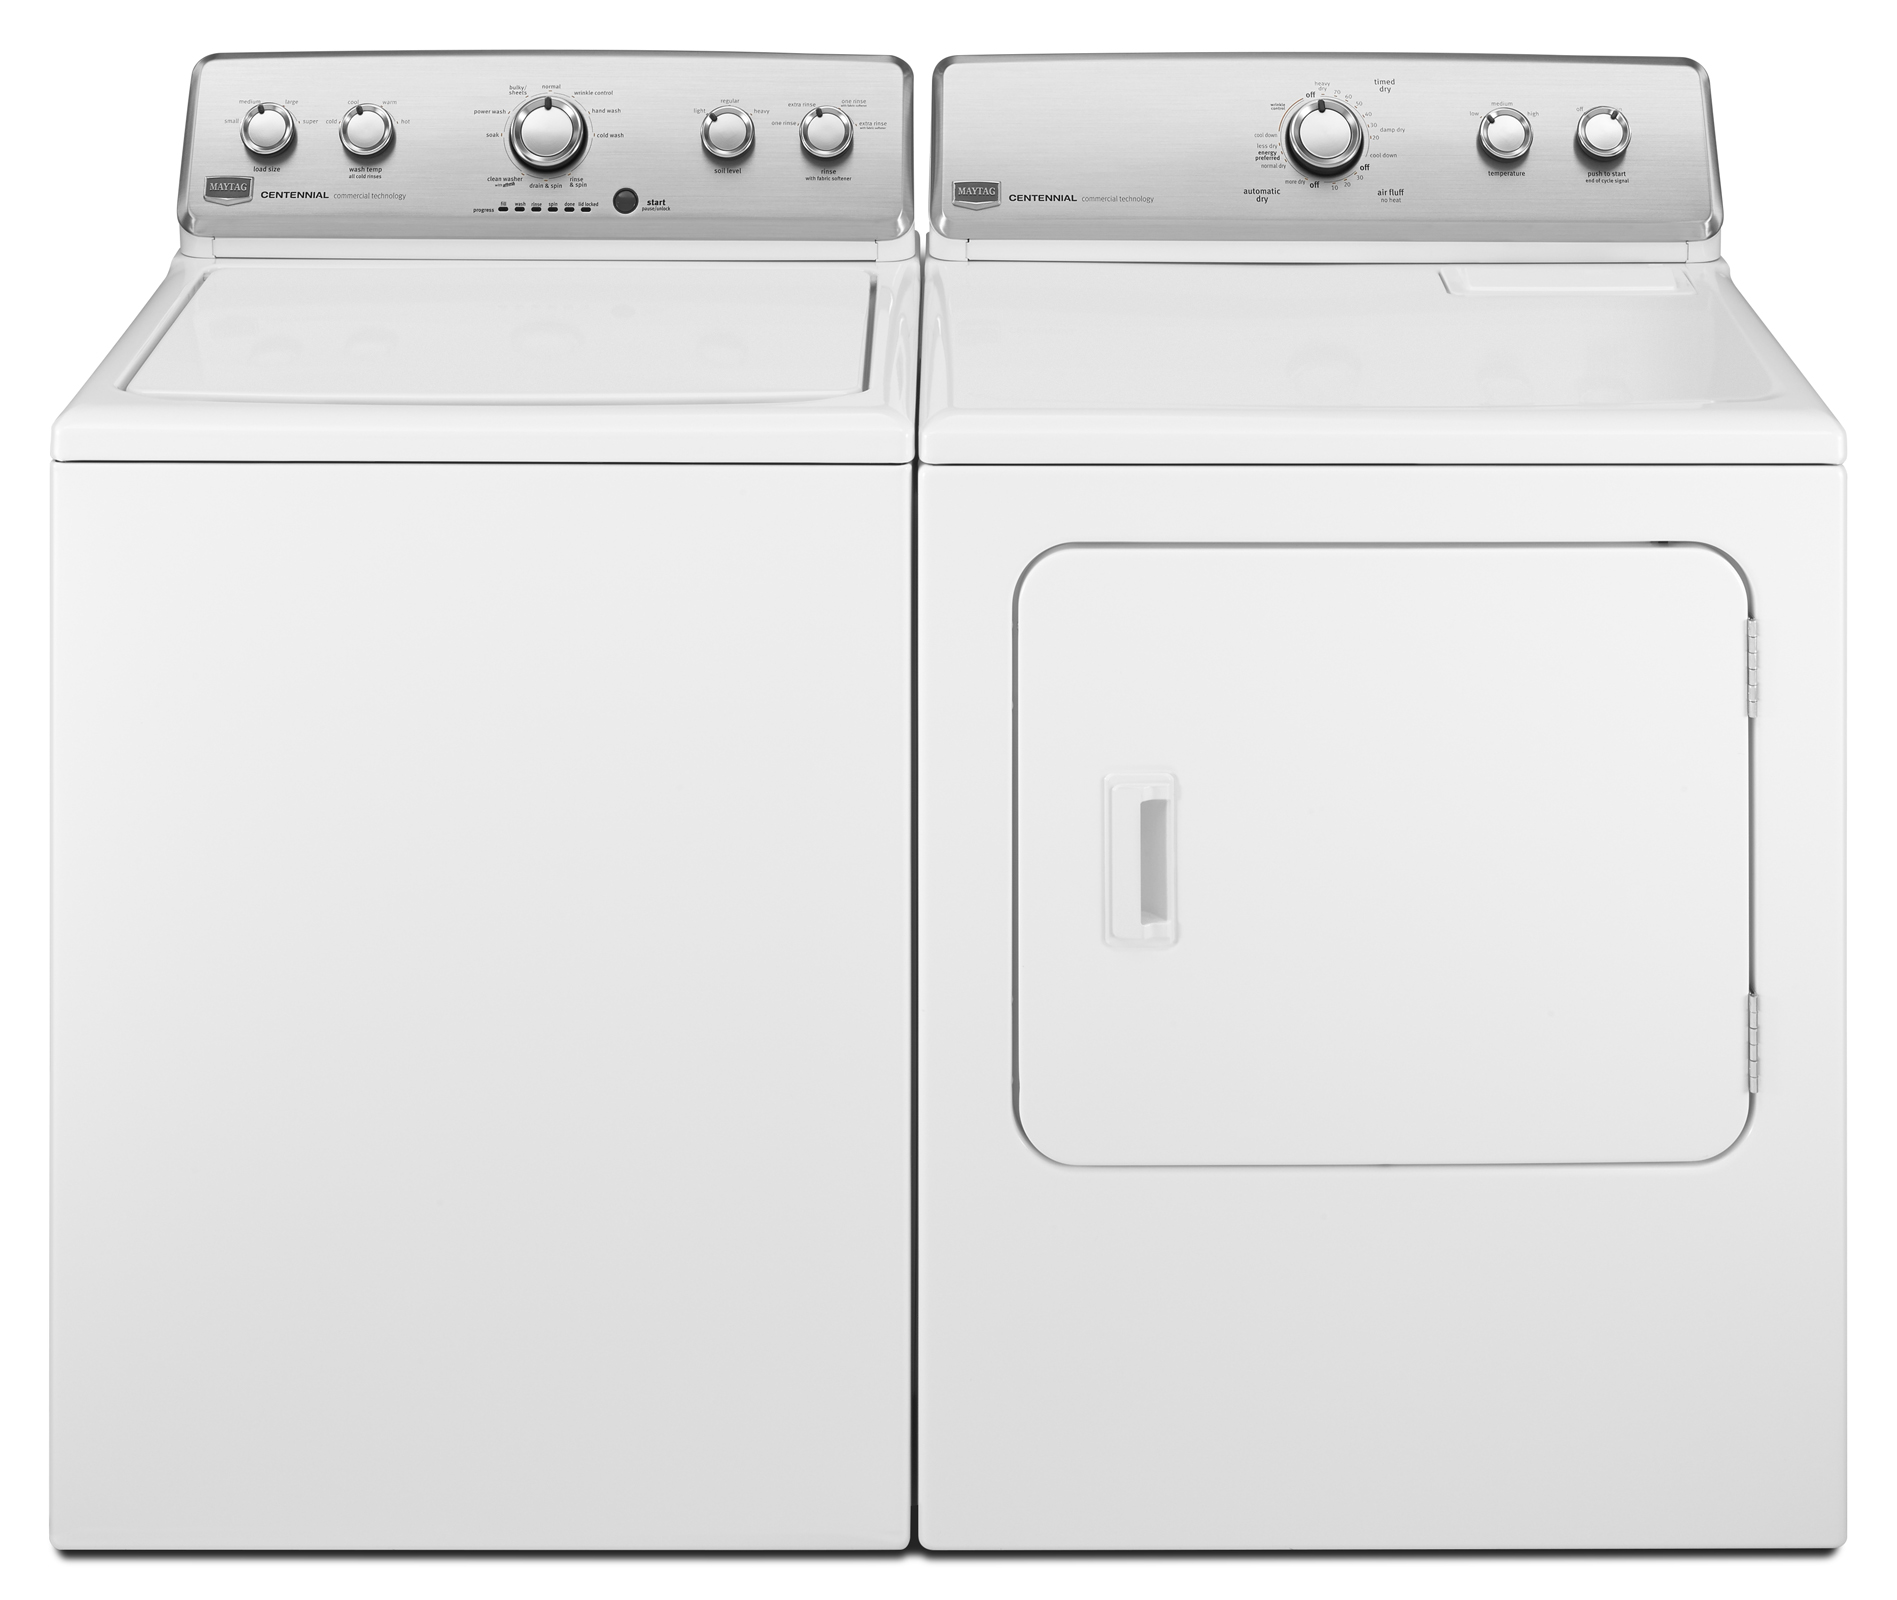 Maytag 3.6 cu. ft. Centennial® Top-Load Washer w/ Bulky/Sheets Cycle